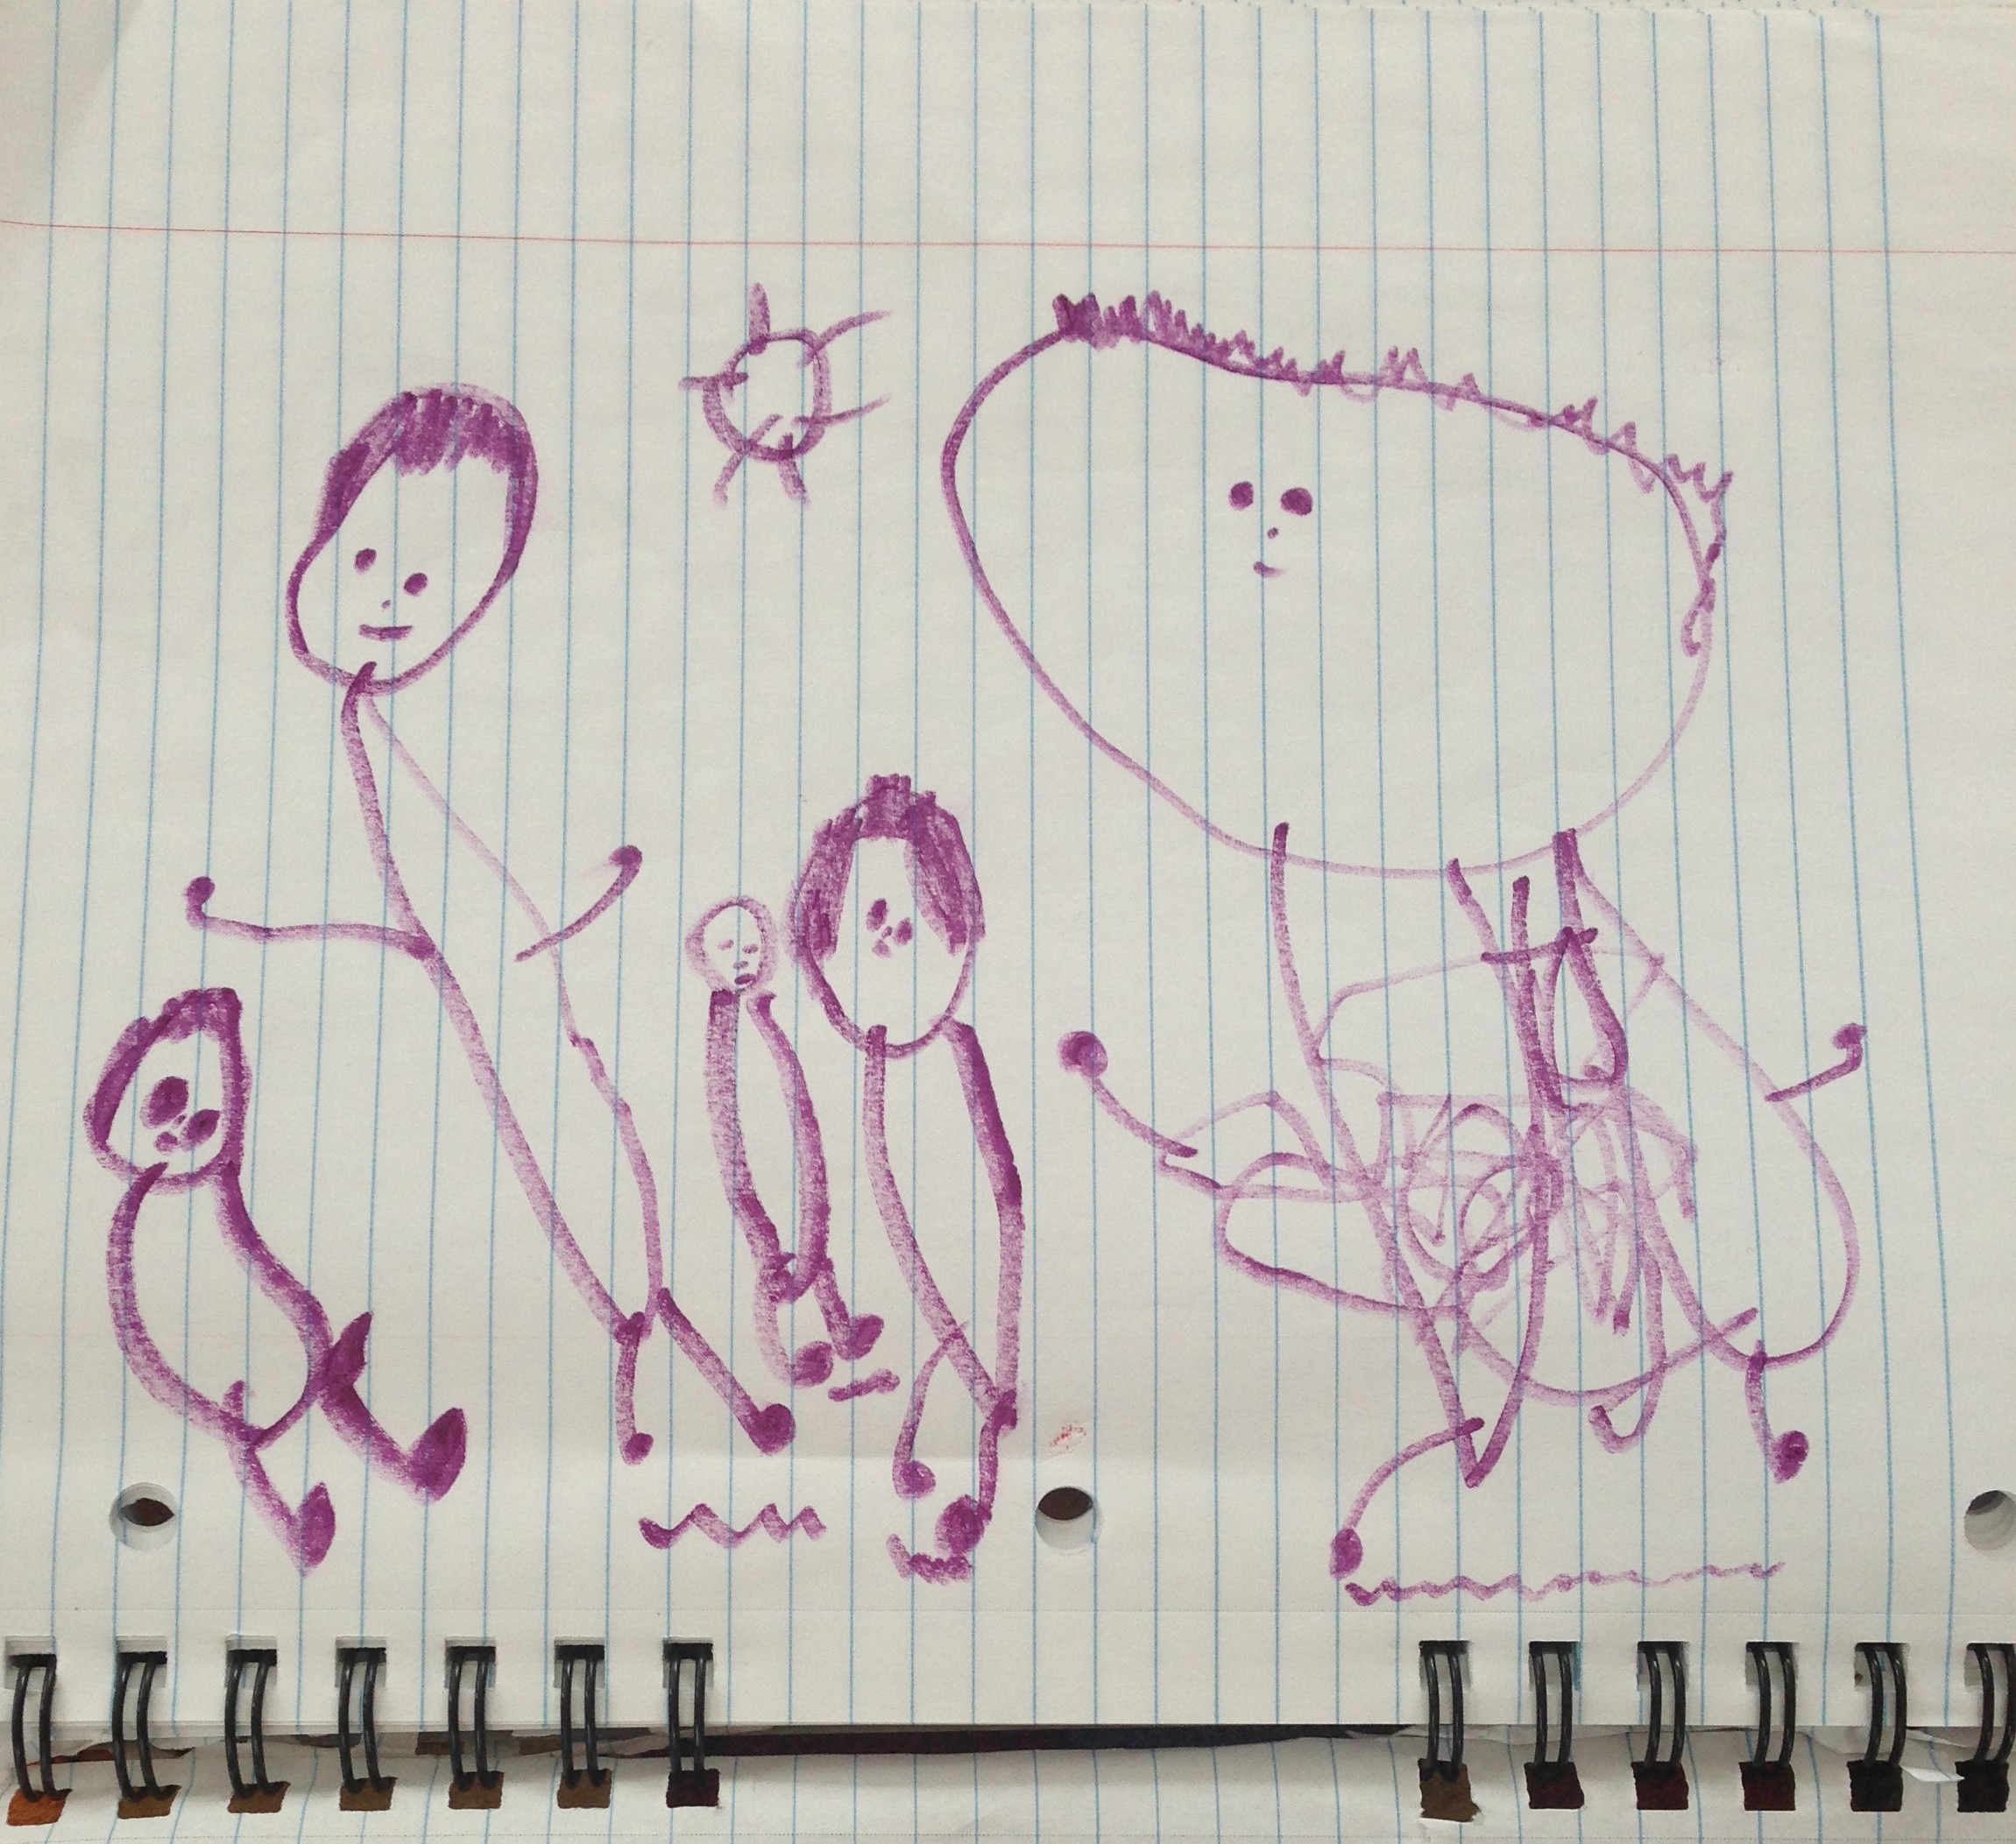 toddler draws people